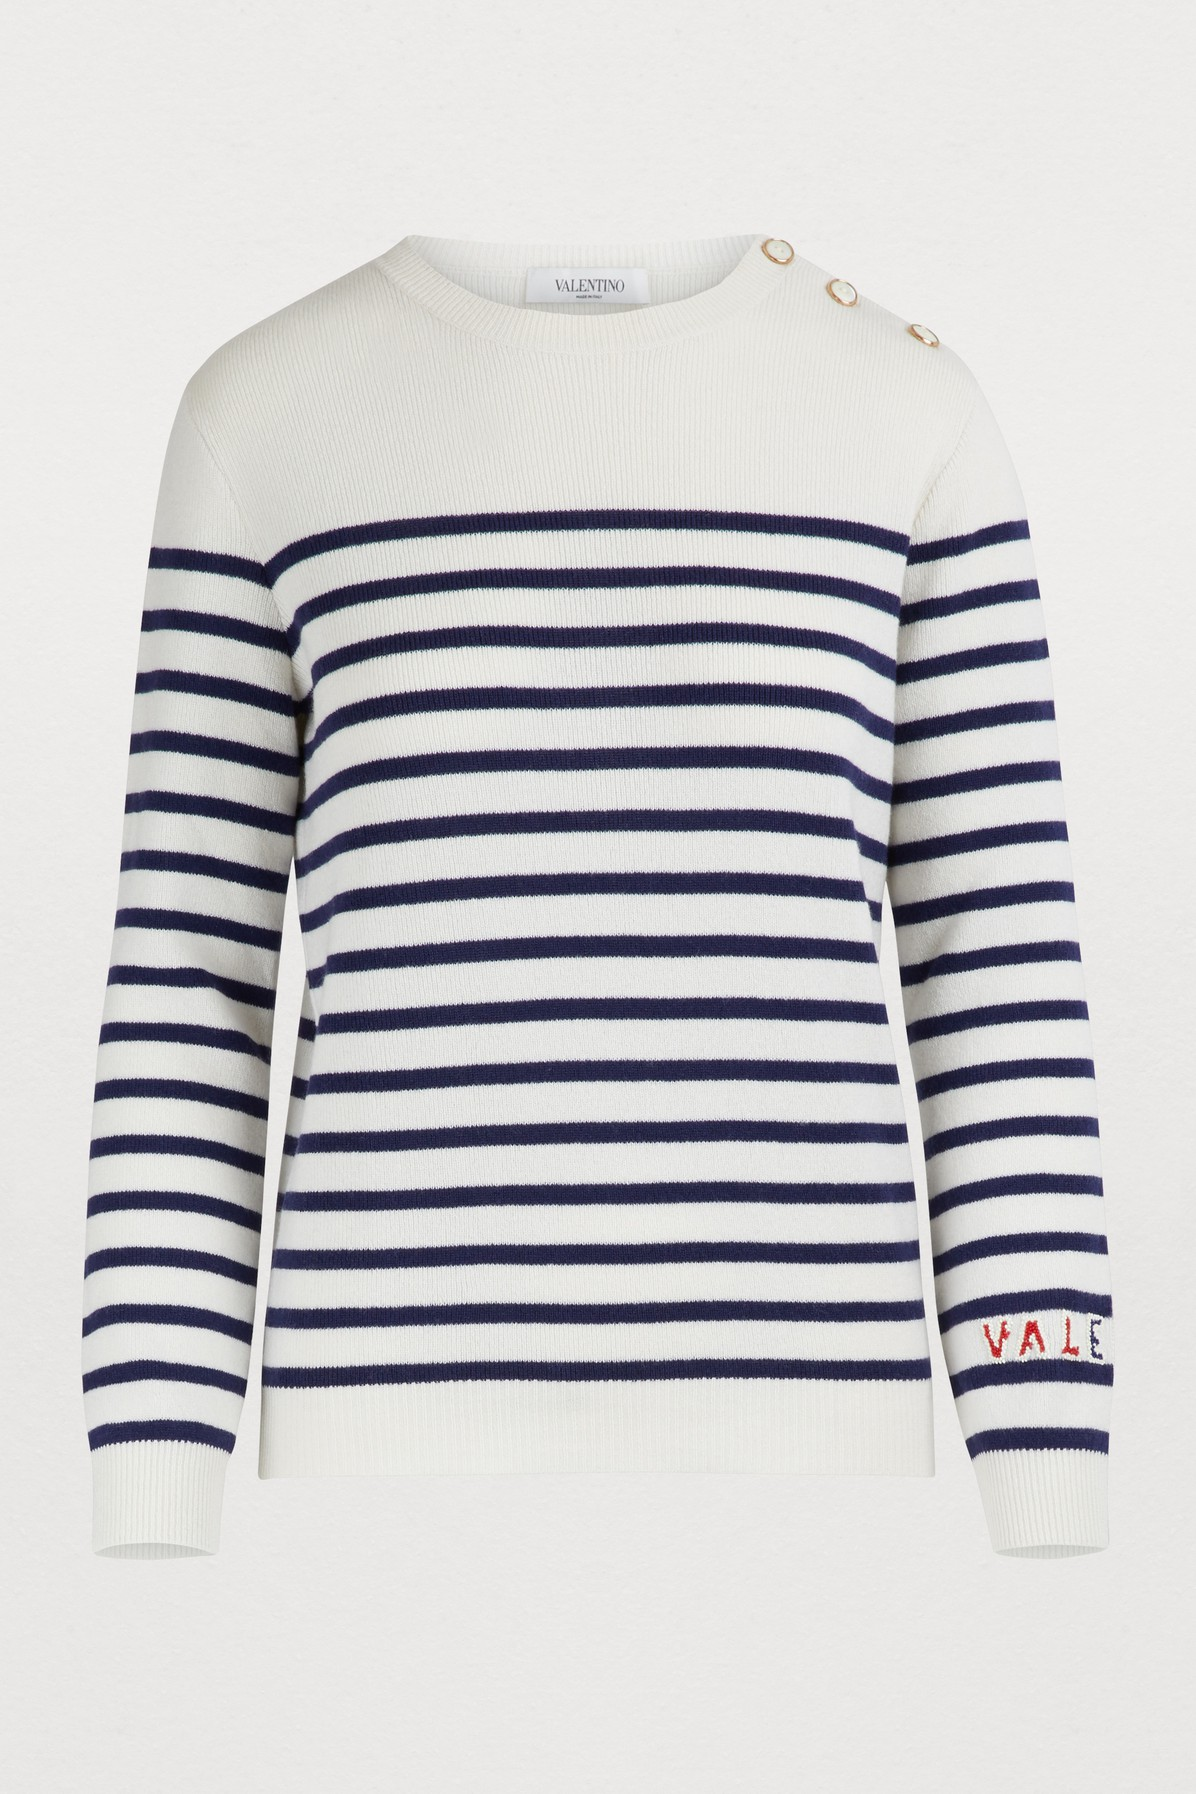 dcfe6b12b Valentino Striped Cashmere Knit Sweater In White